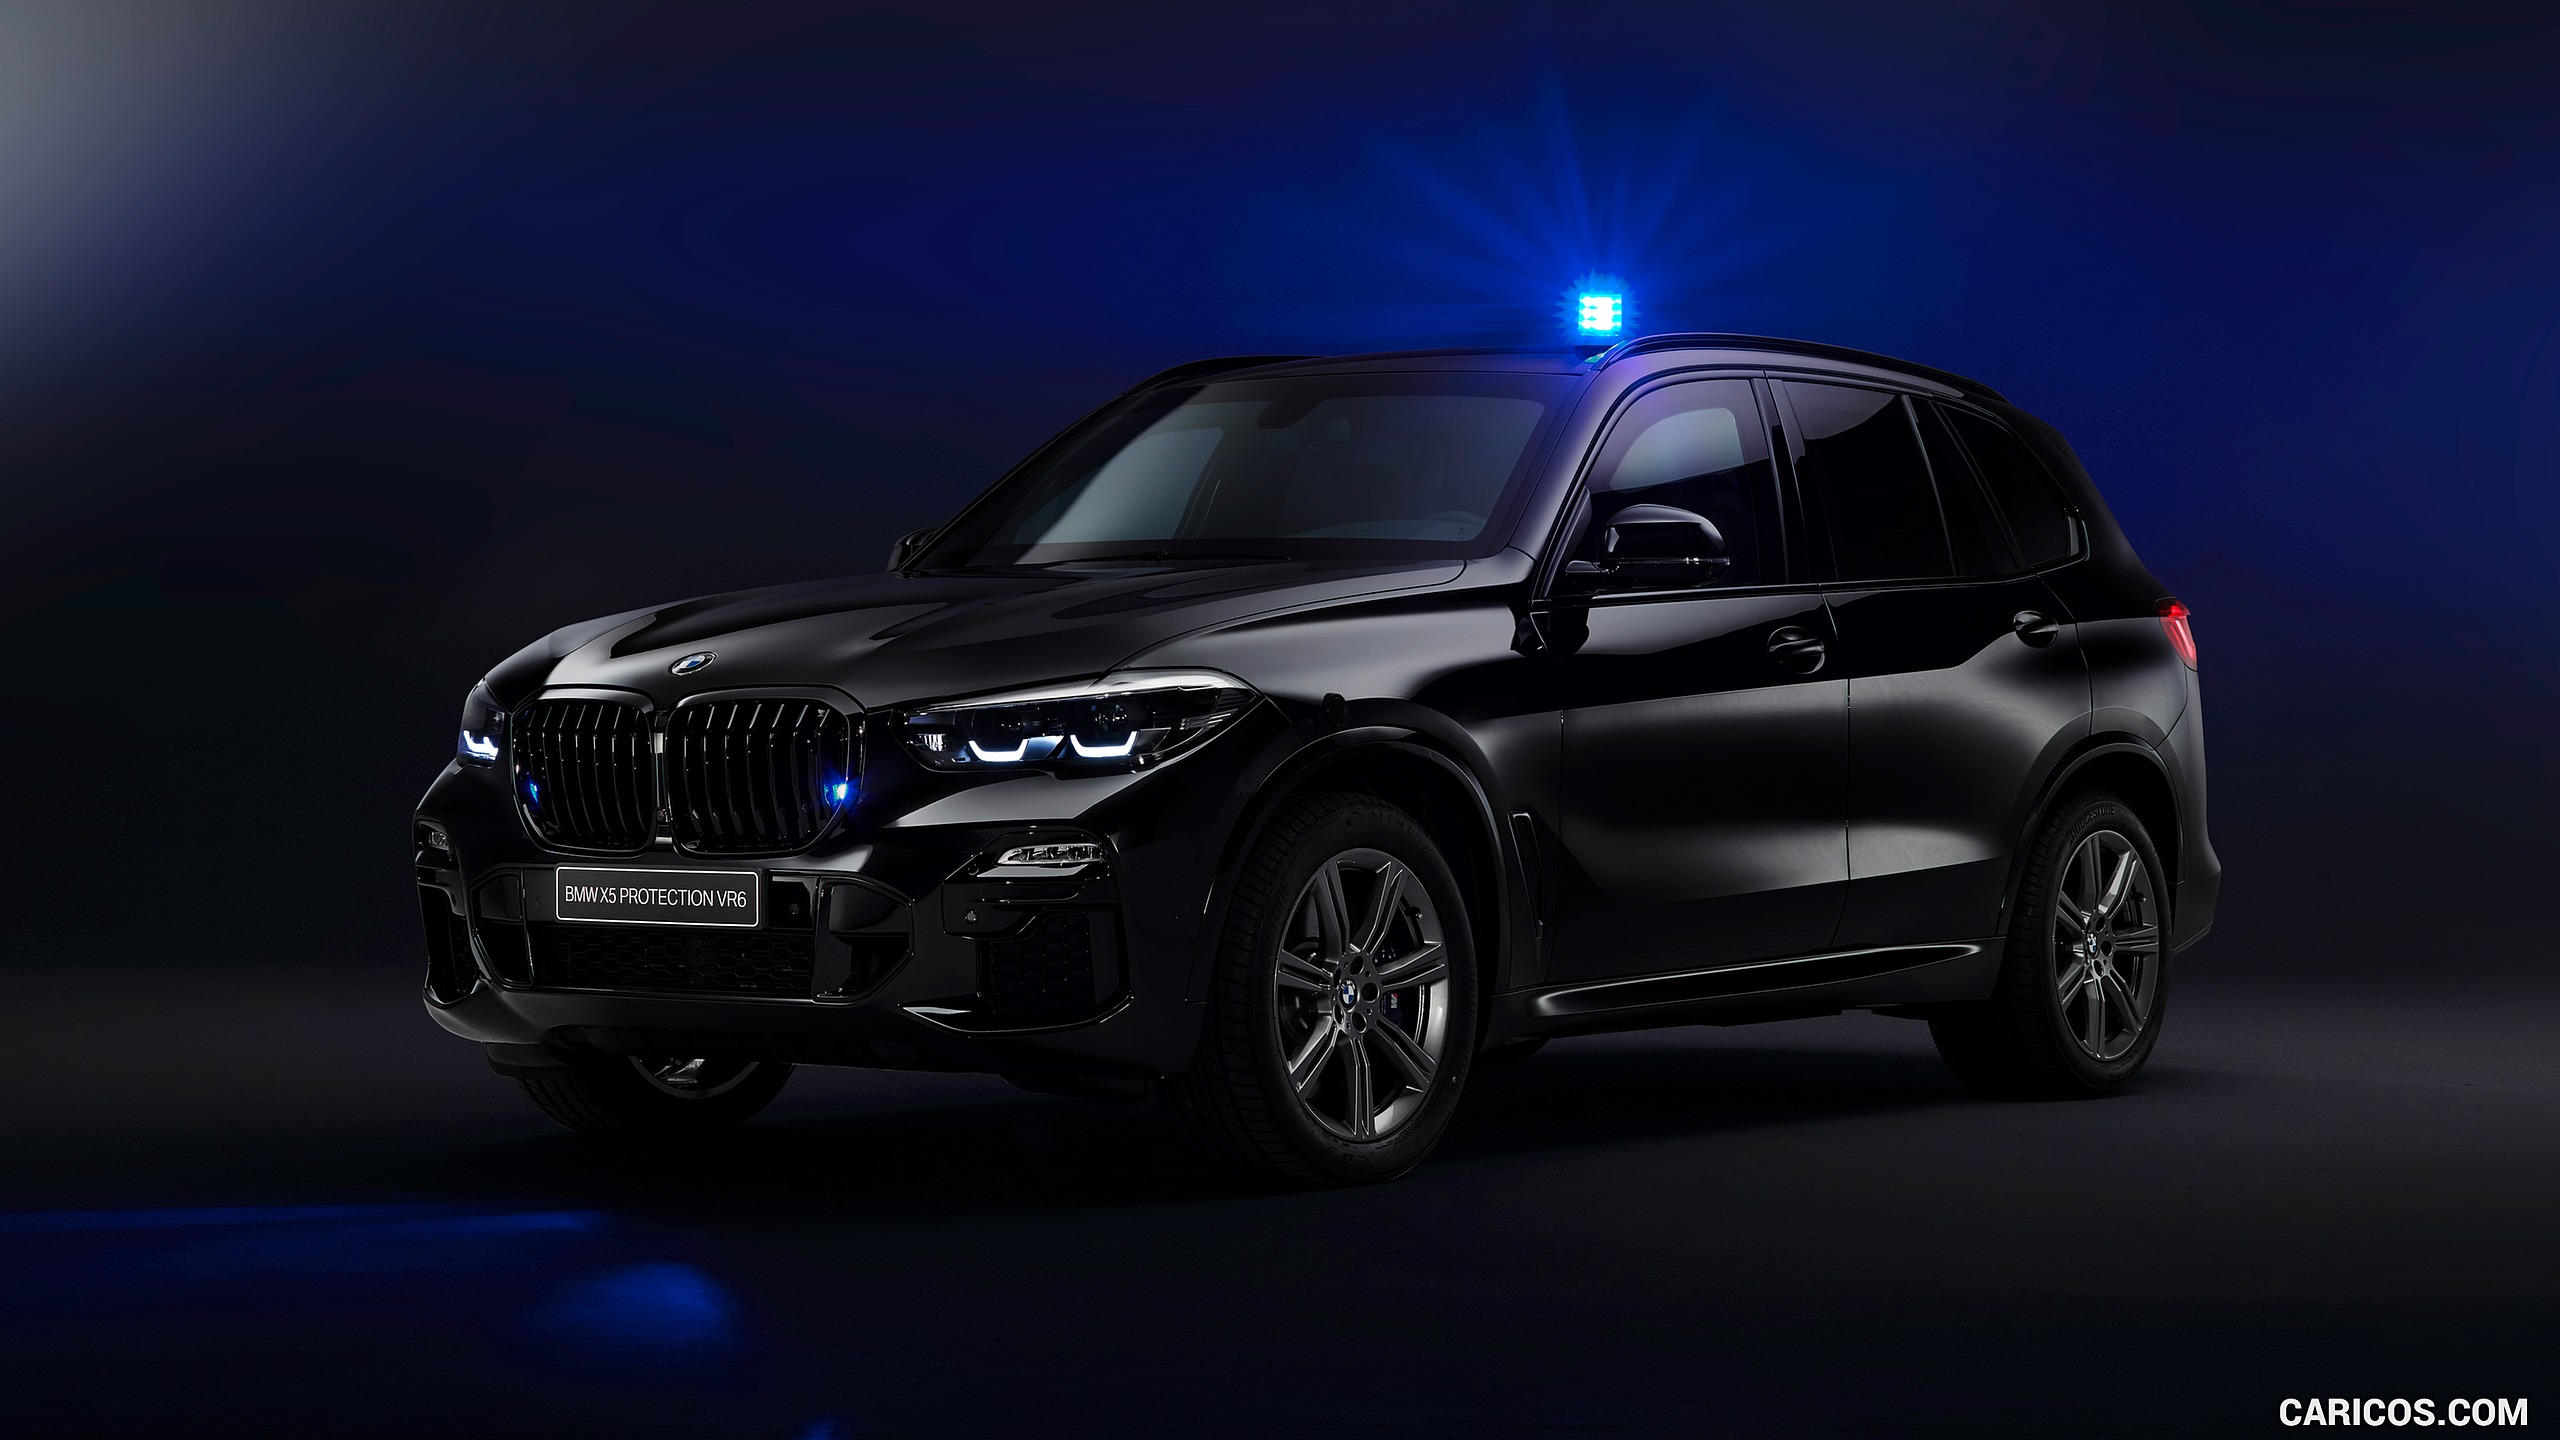 2020 BMW X5 Protection VR6 Armored Vehicle   Front Three Quarter 2560x1440